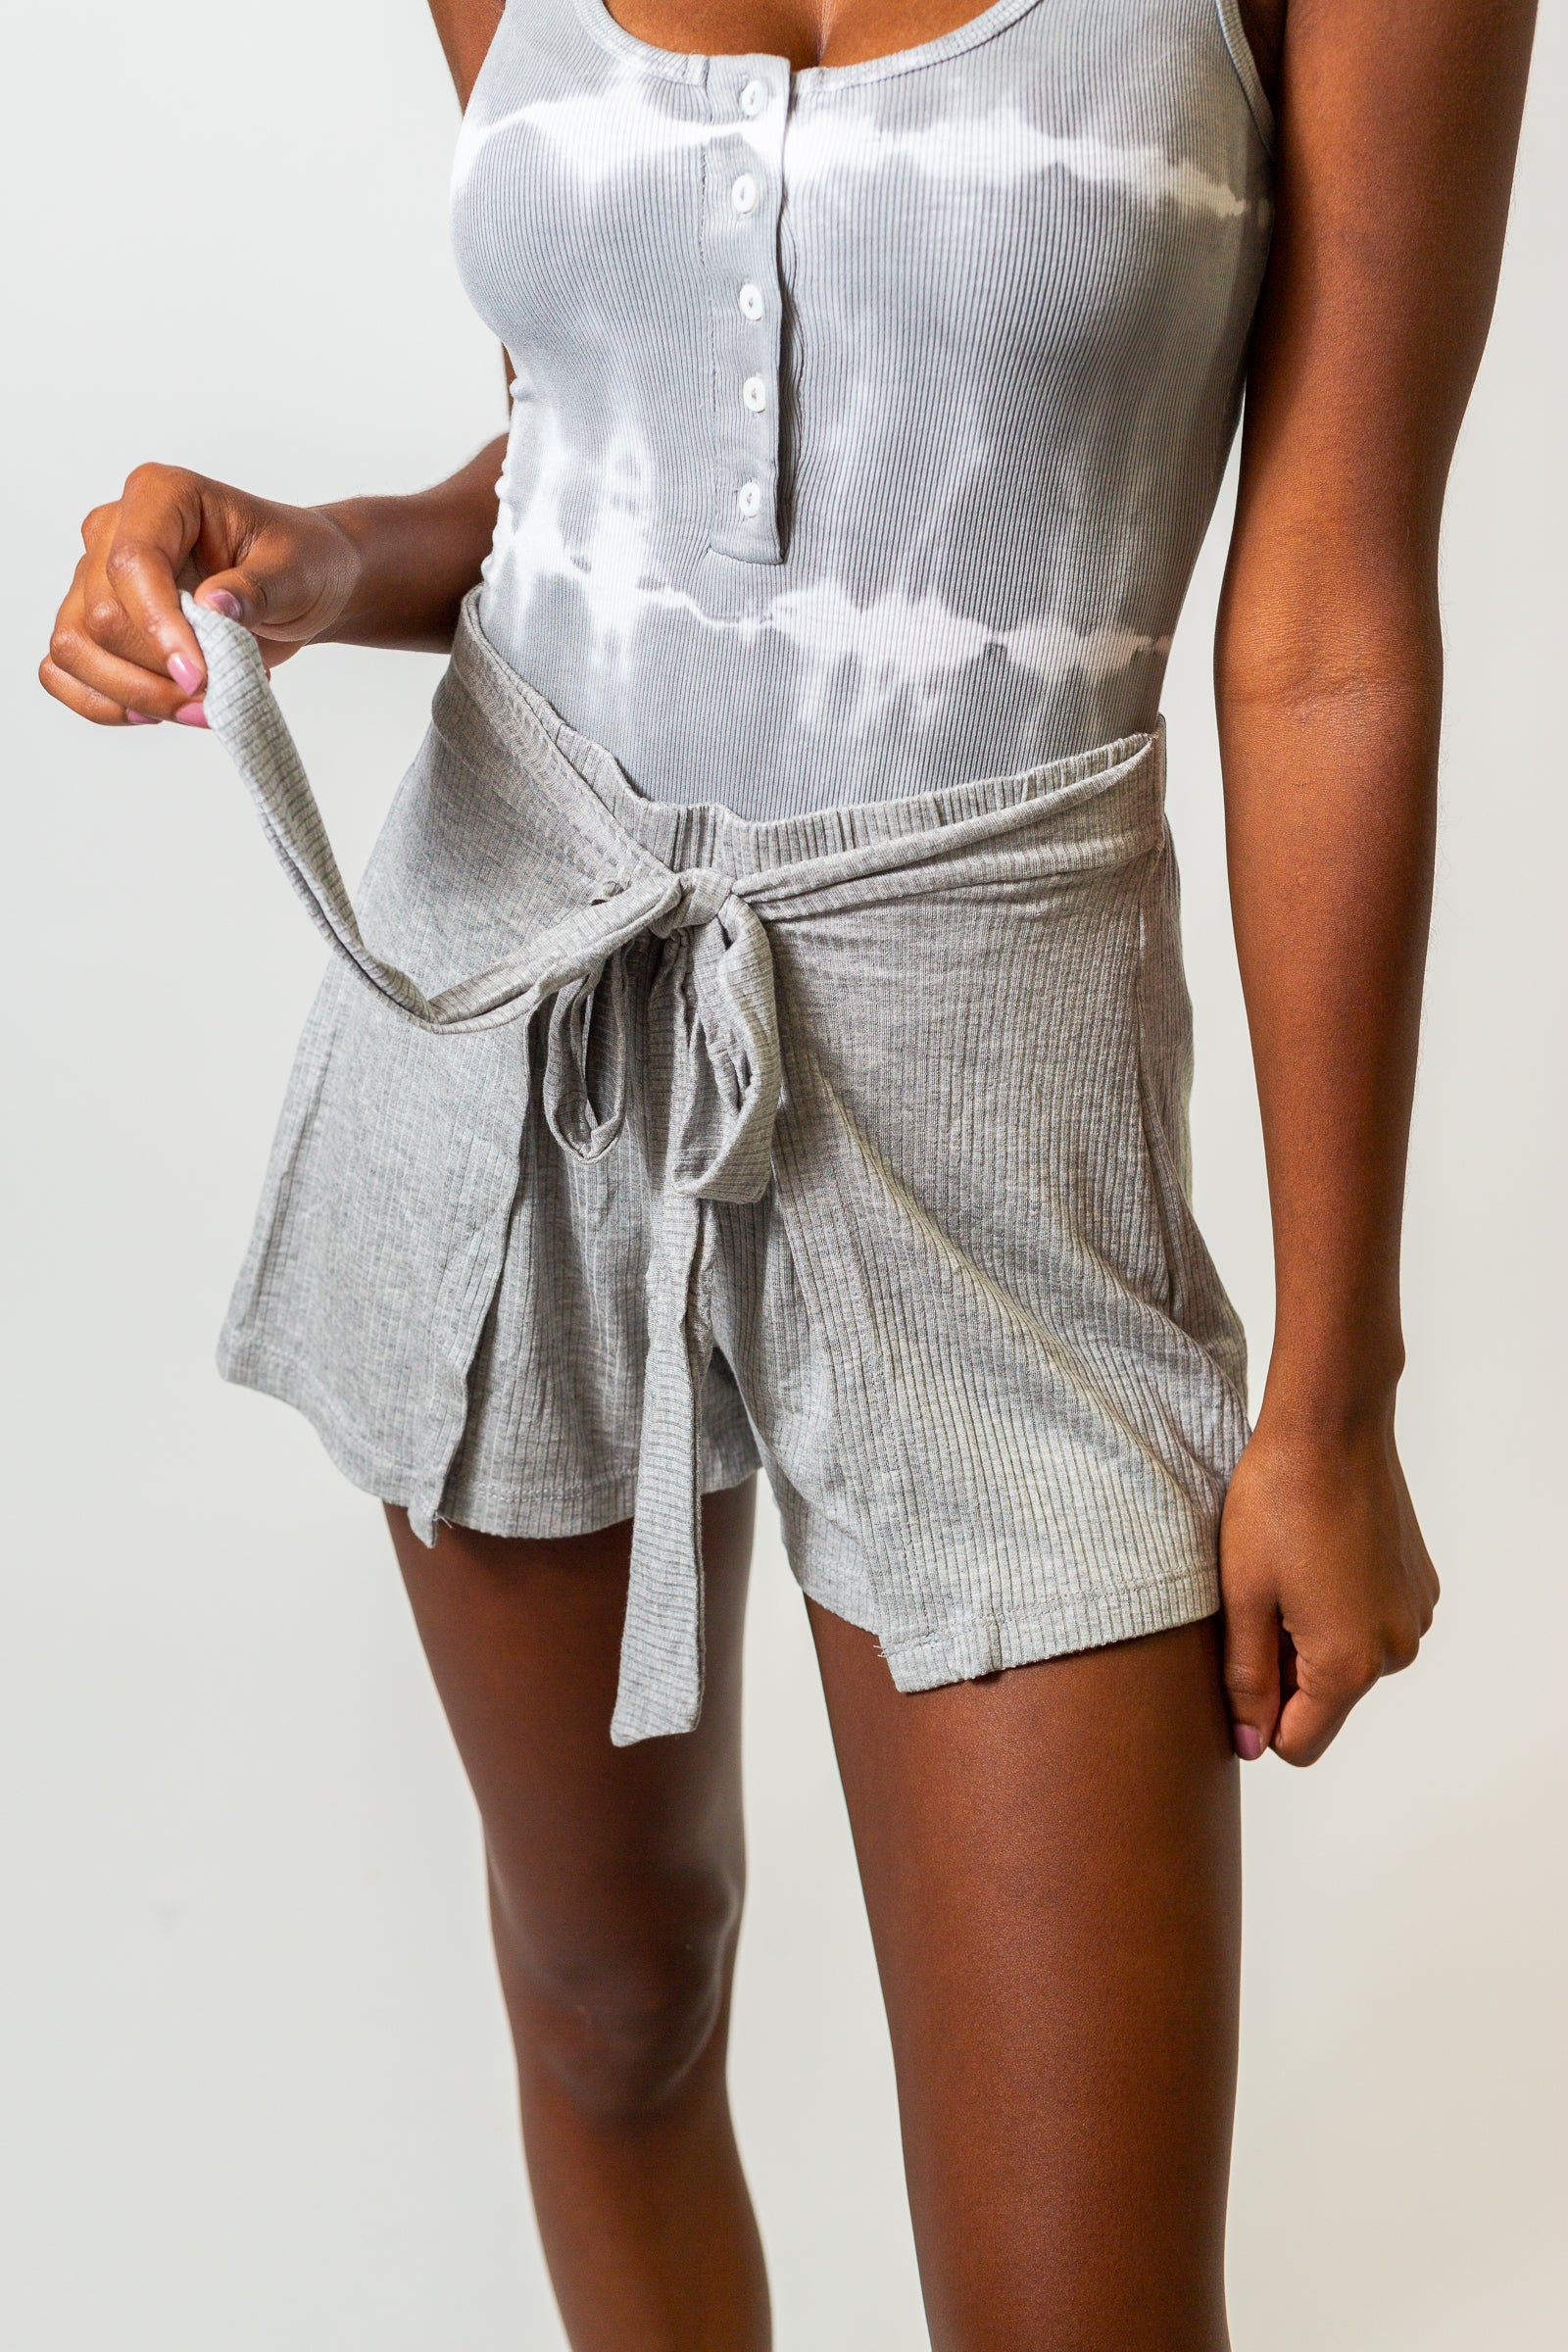 These comfy ribbed shorts have an elastic waistband with fabric panels coming from each side to tie at the front of these loose shorts.